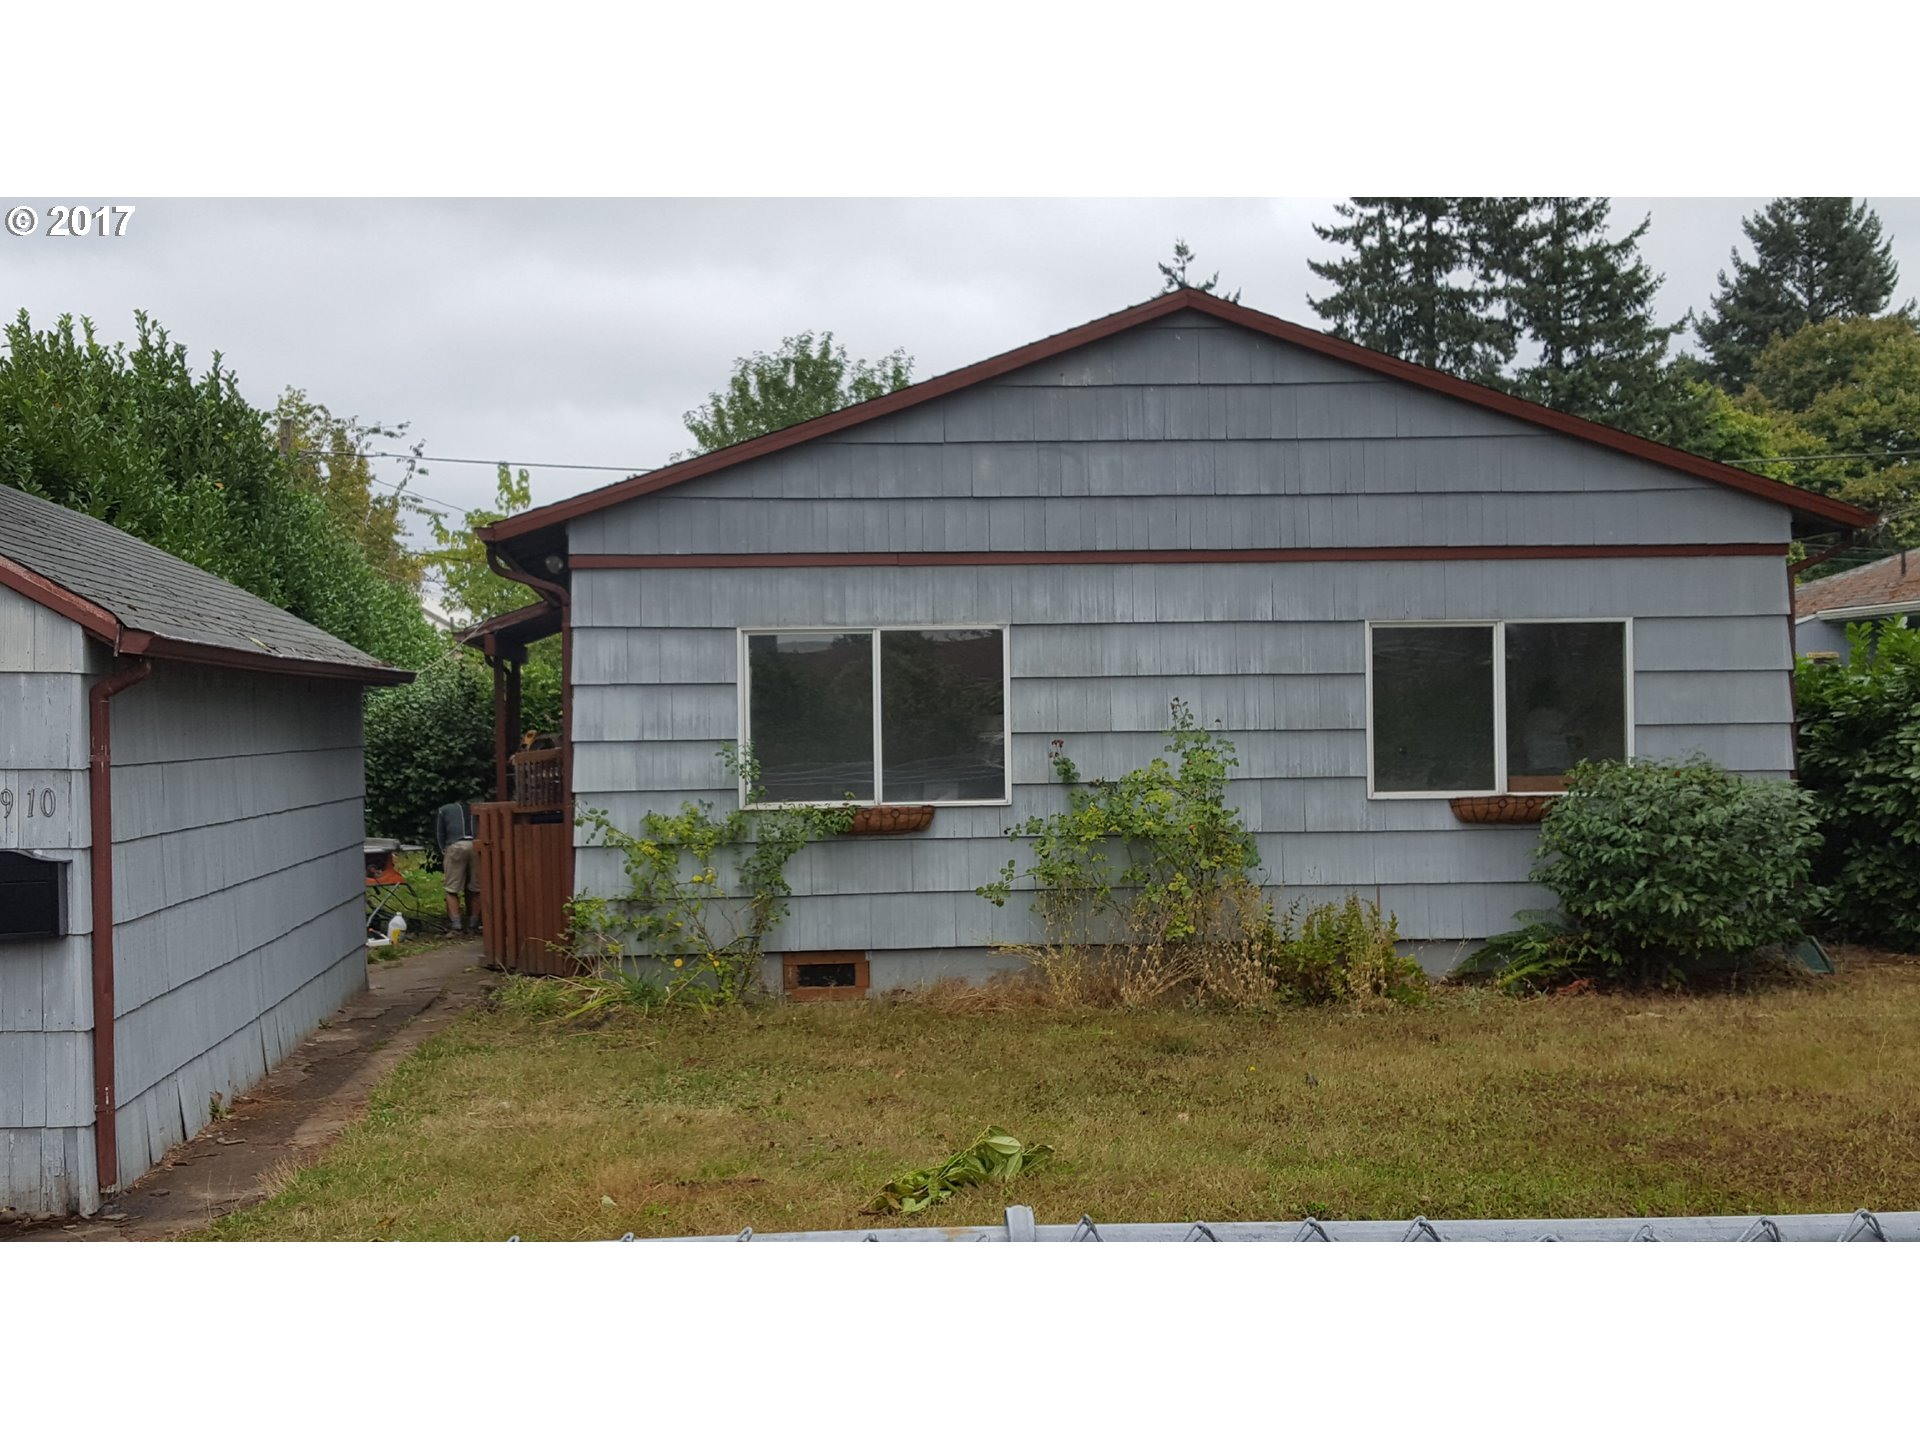 1204 sq. ft 3 bedrooms 1 bathrooms  House For Sale, Portland, OR